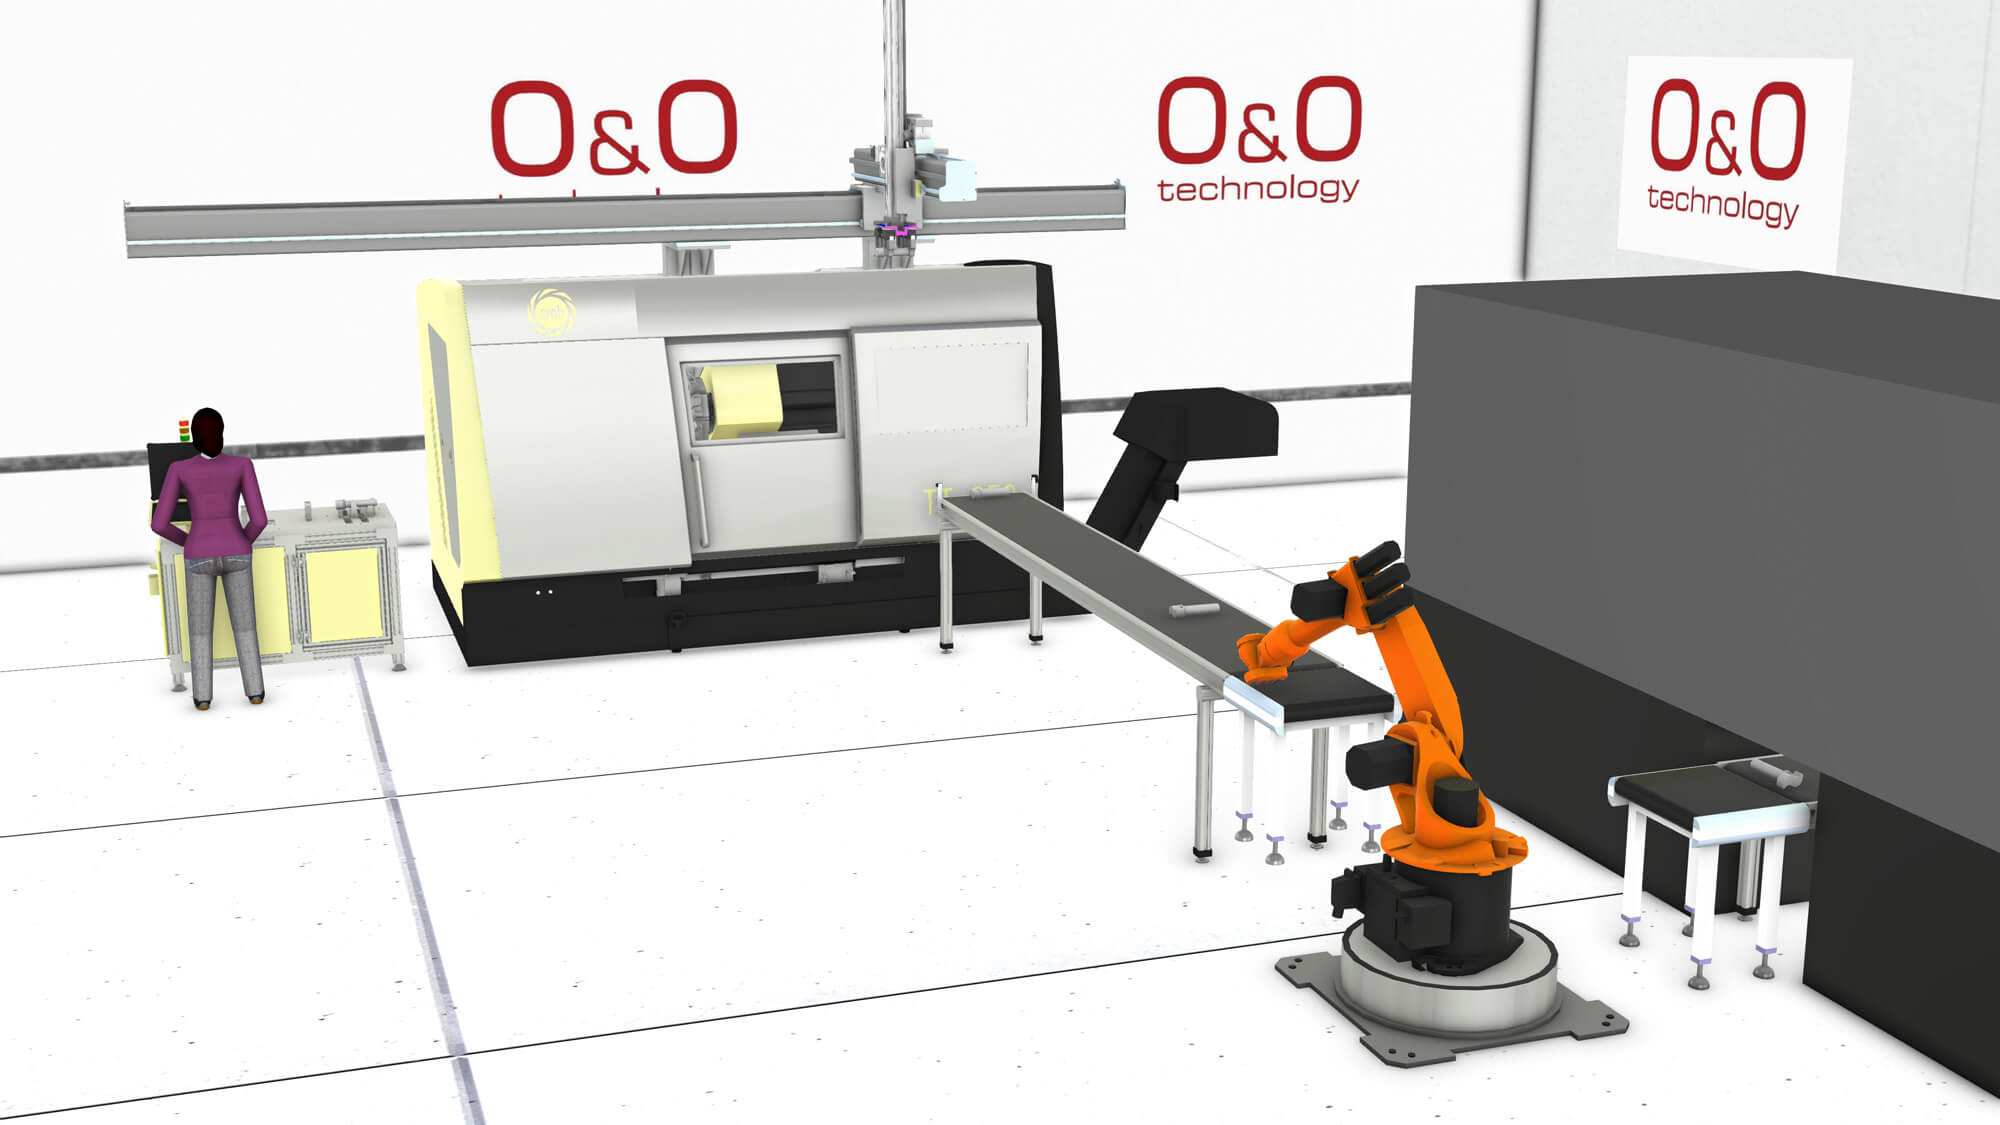 Simulation of a person programming at a production line and a robot manufacturing